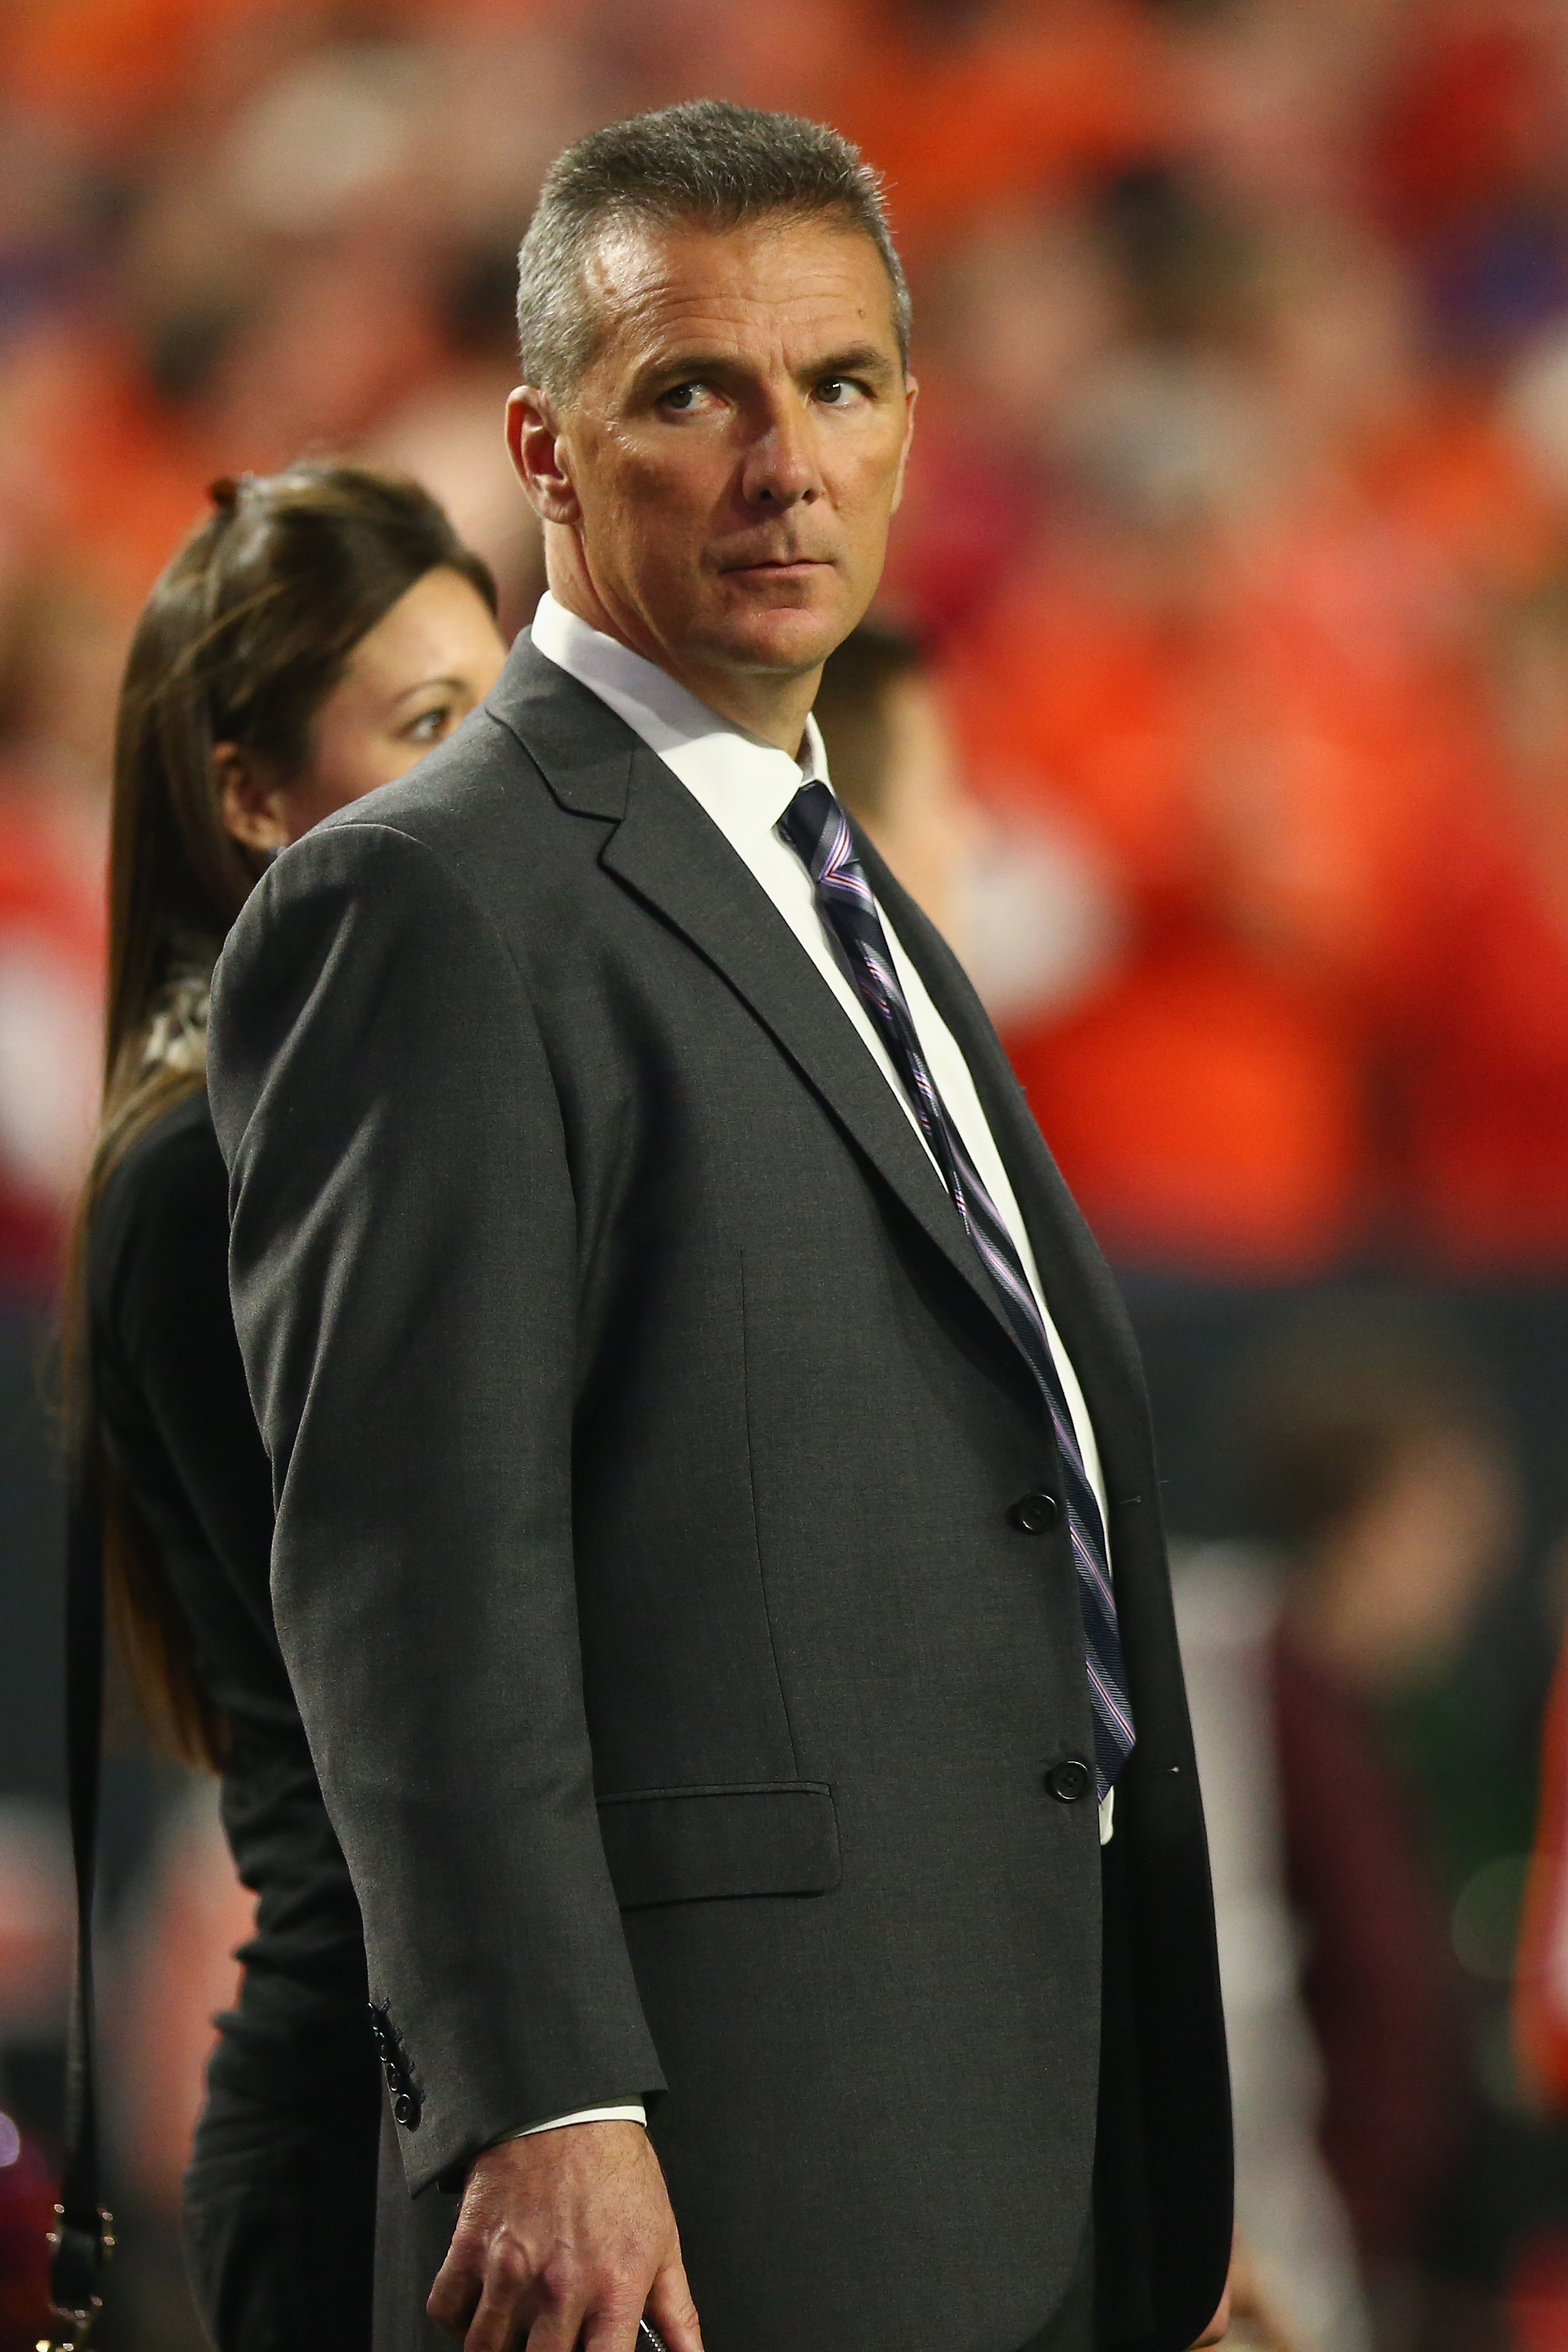 GLENDALE, AZ - JANUARY 11:  Head coach Urban Meyer of the Ohio State Buckeyes is seen during the 2016 College Football Playoff National Championship Game at University of Phoenix Stadium on January 11, 2016 in Glendale, Arizona.  (Photo by Ronald Martinez/Getty Images)